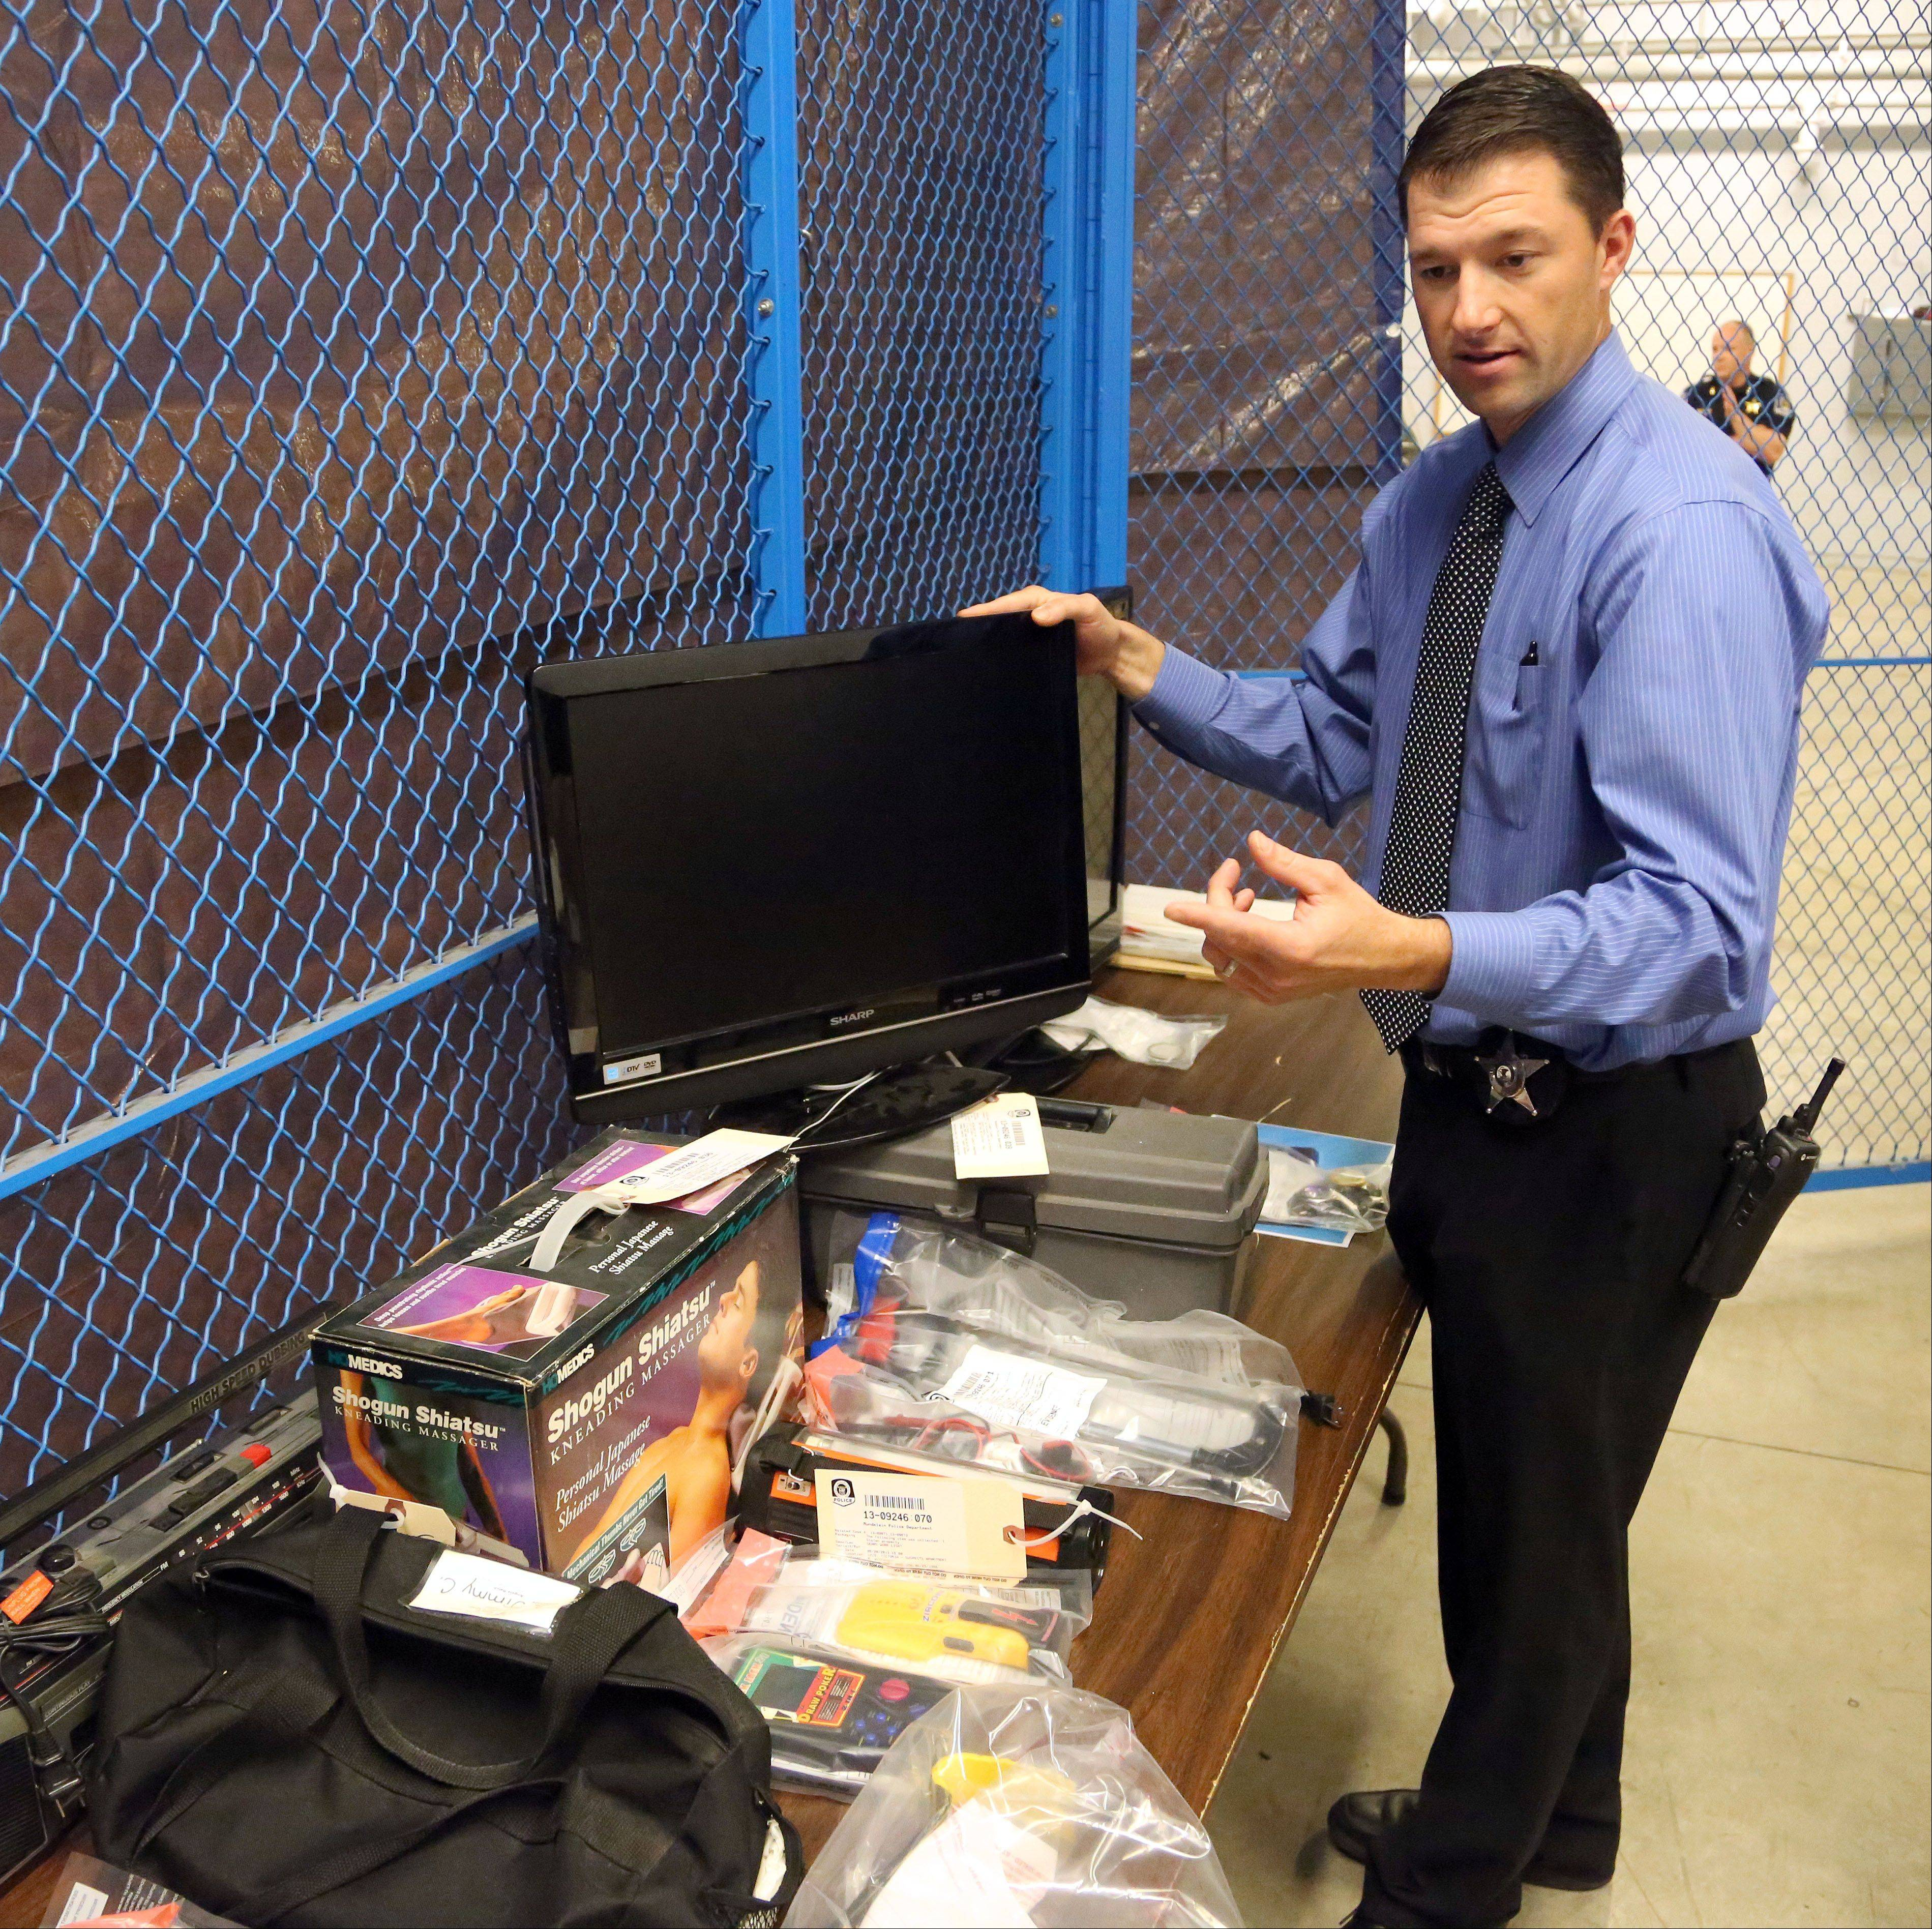 Mundelein Police Investigation Officer Jason Seeley reviews items recovered after two men were caught burglarizing a house in Mundelein. Police searched the suspects' homes and found the stolen items.